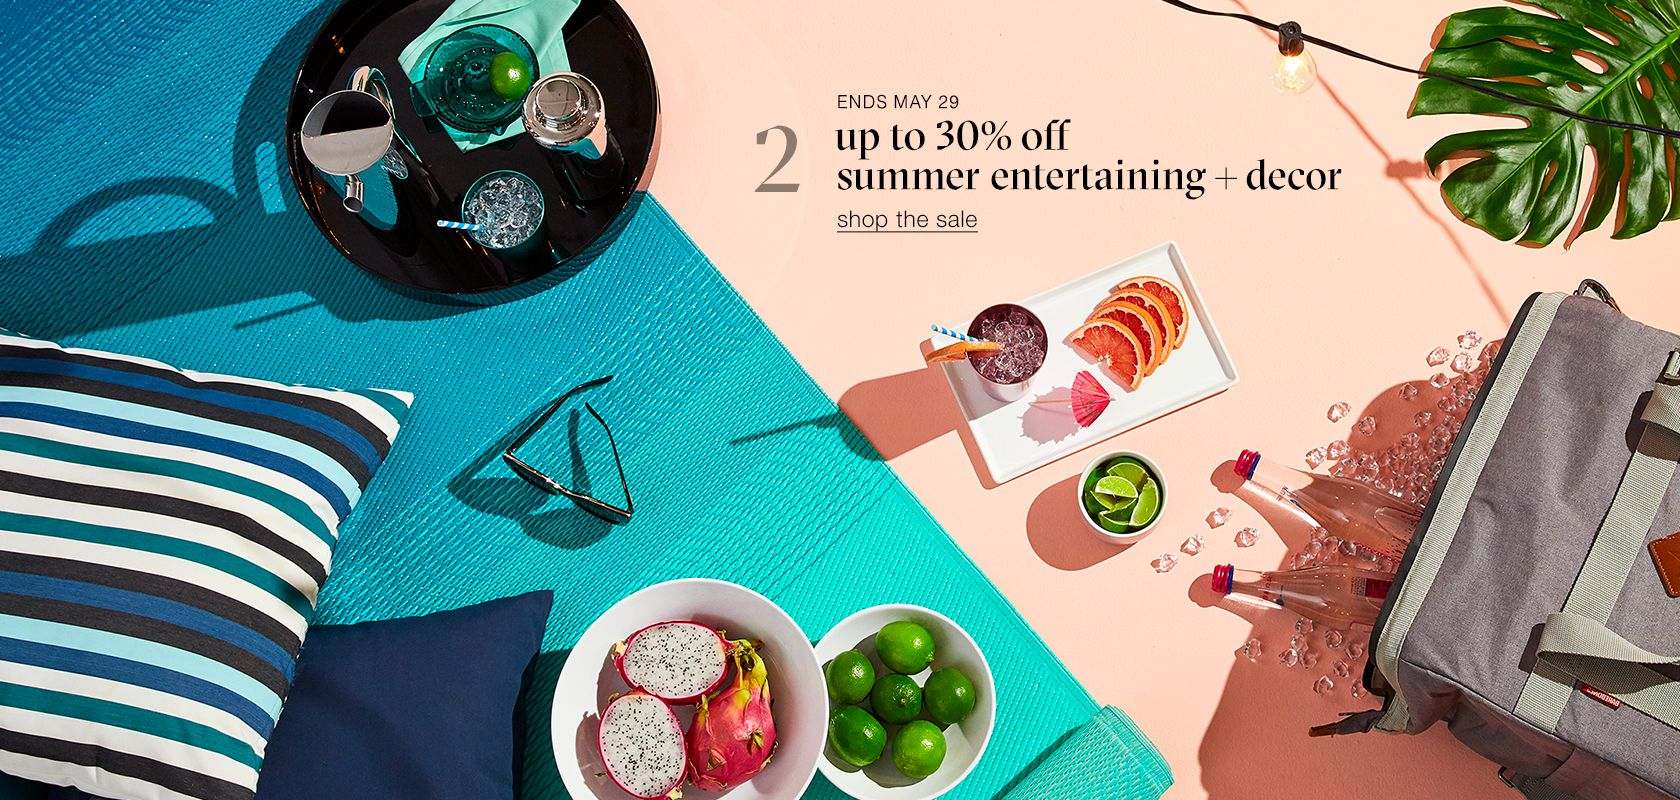 up to 30% off summer entertaining and decor